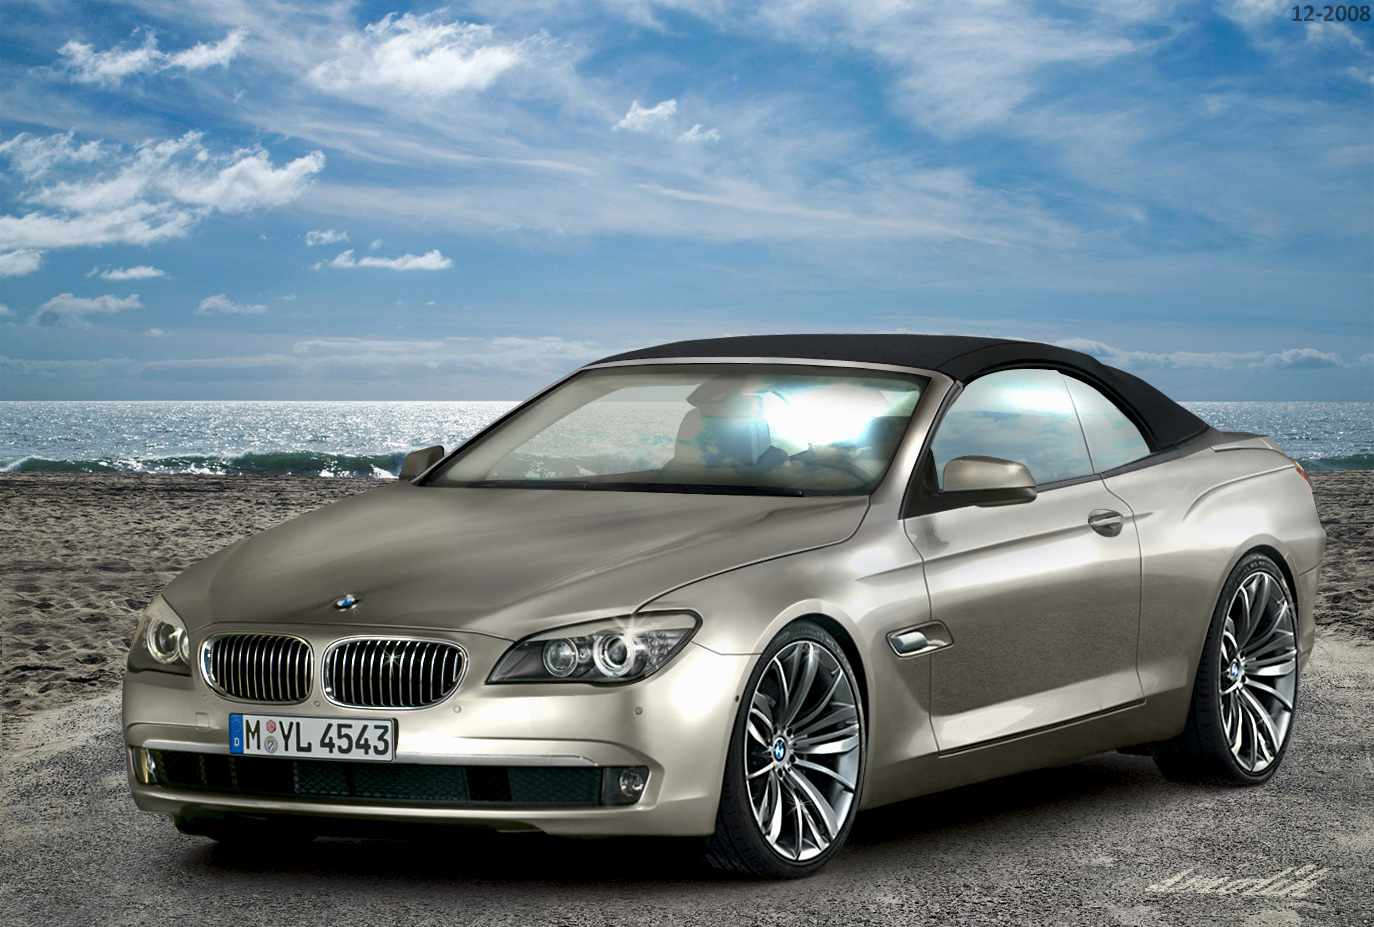 2010 bmw m6 bmw auto cars. Black Bedroom Furniture Sets. Home Design Ideas